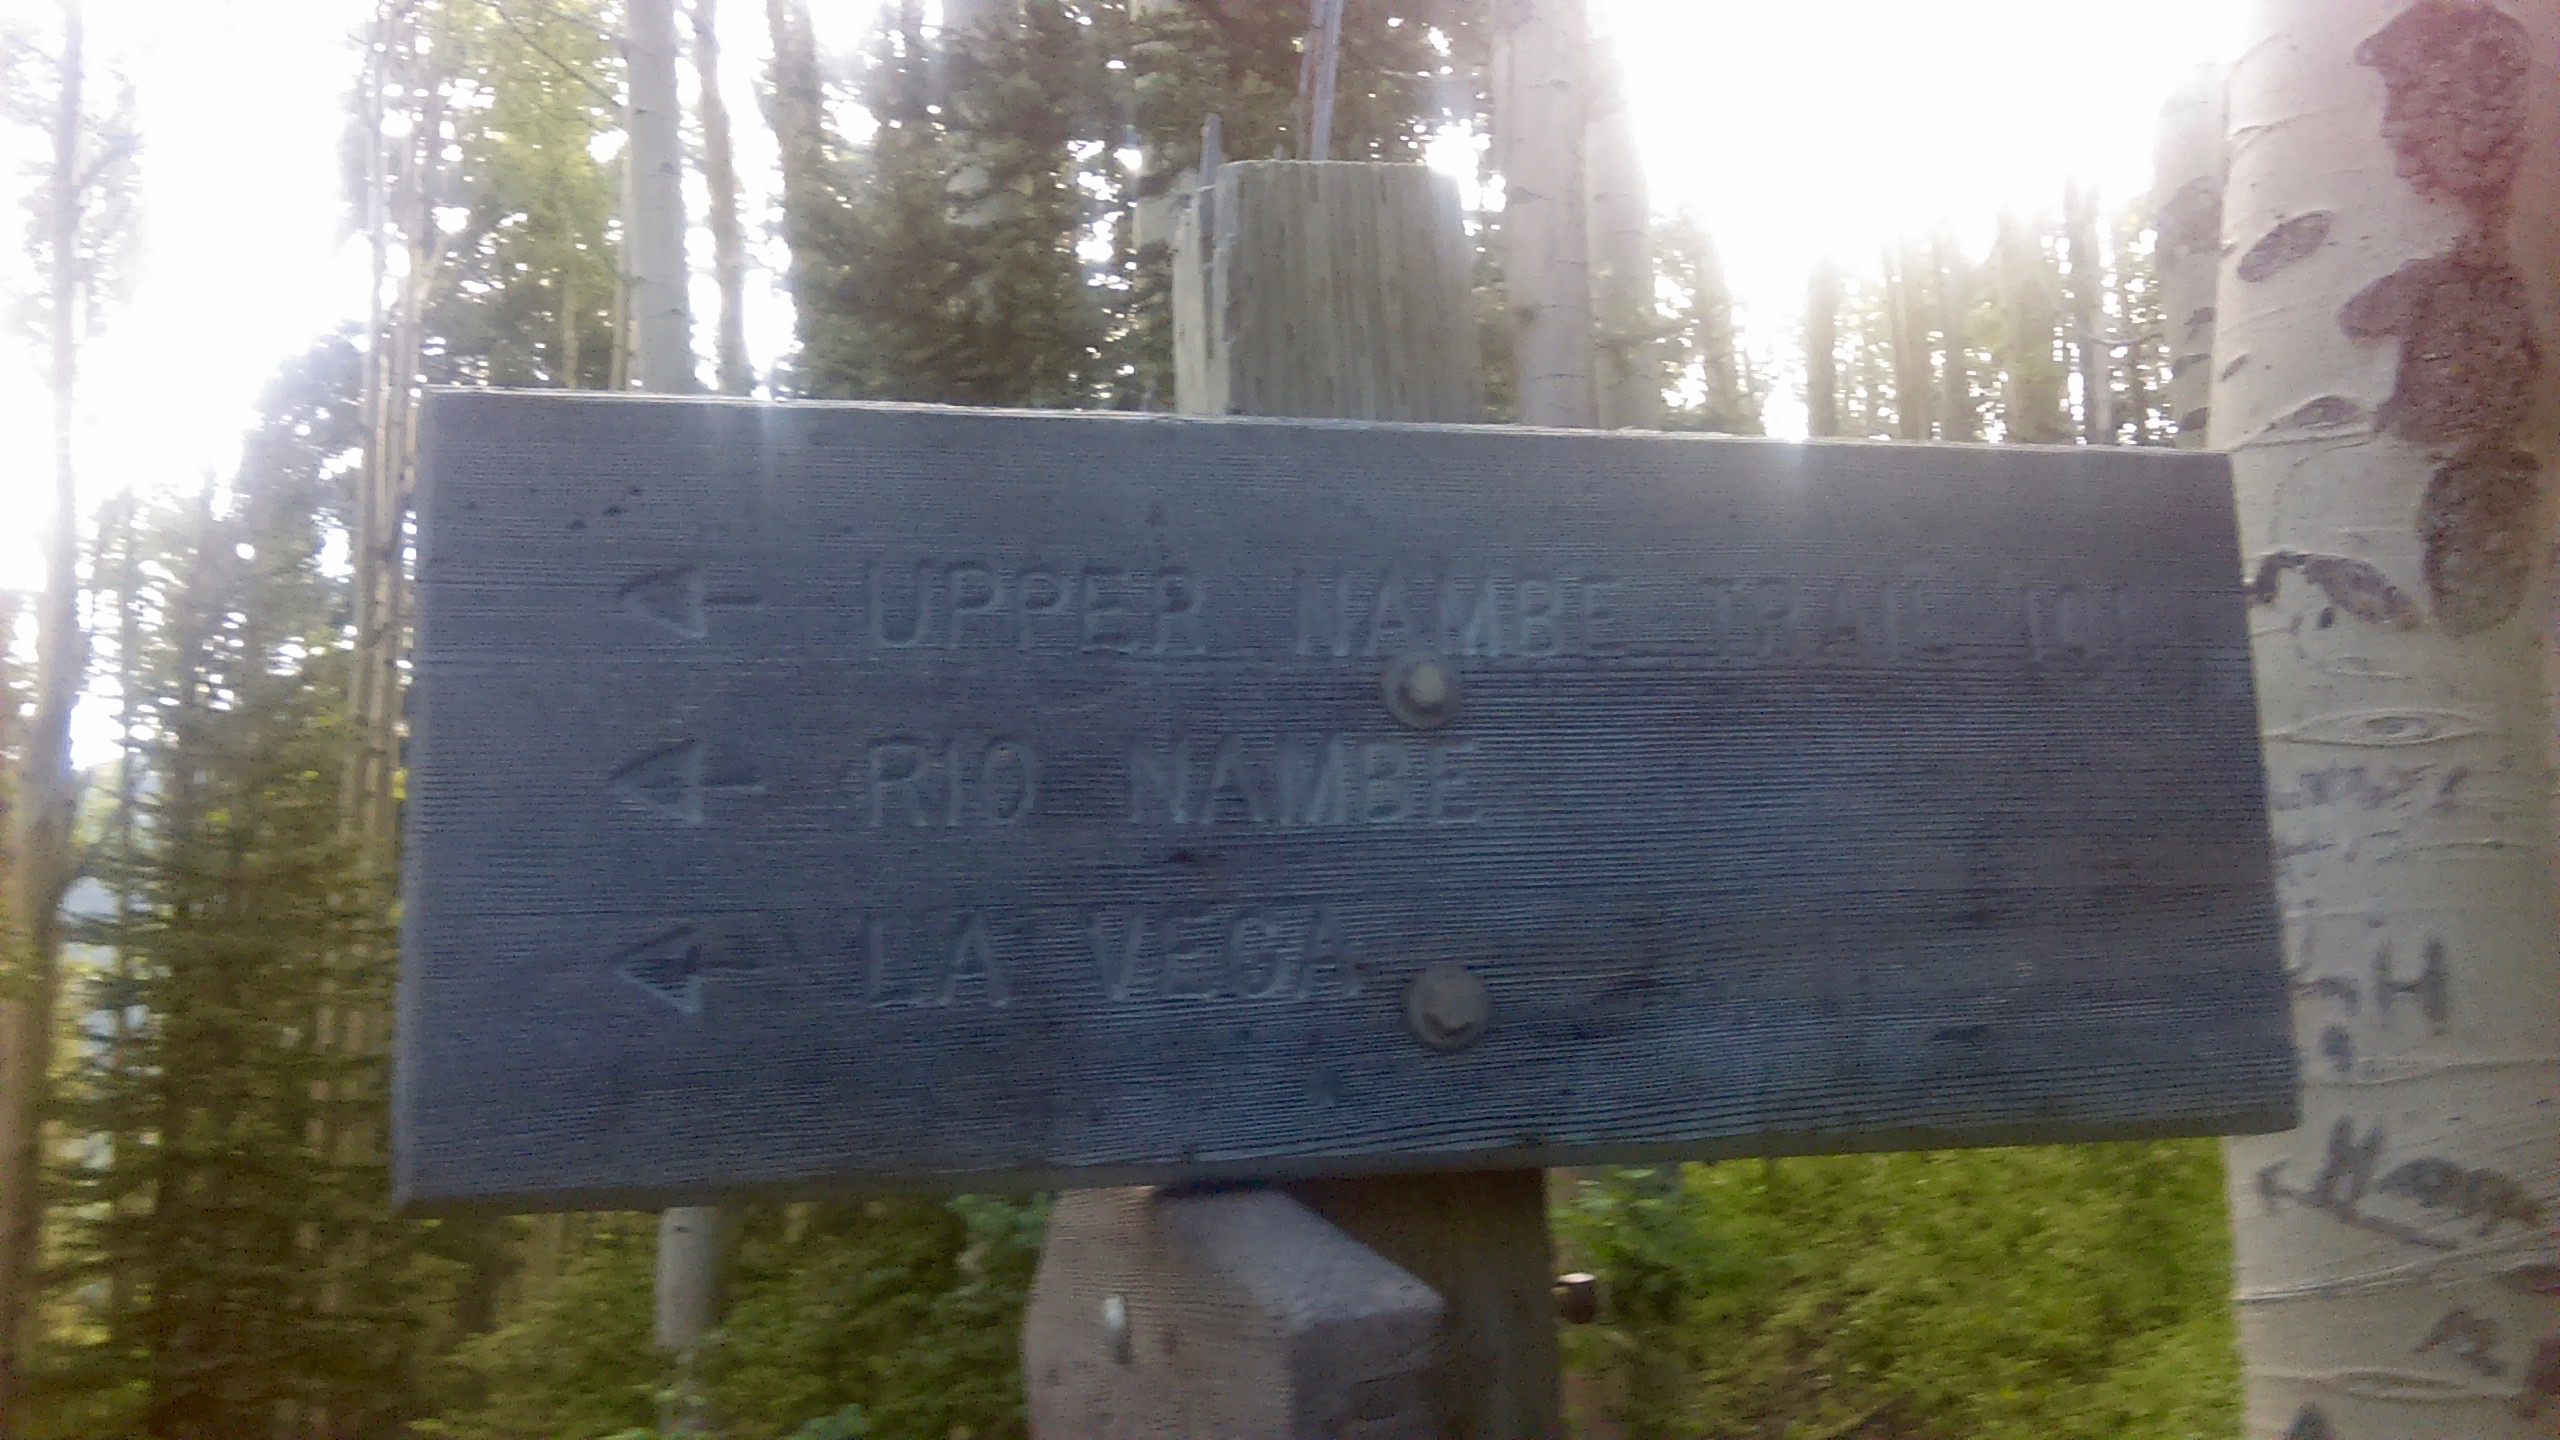 04 Well signed trail junctinos